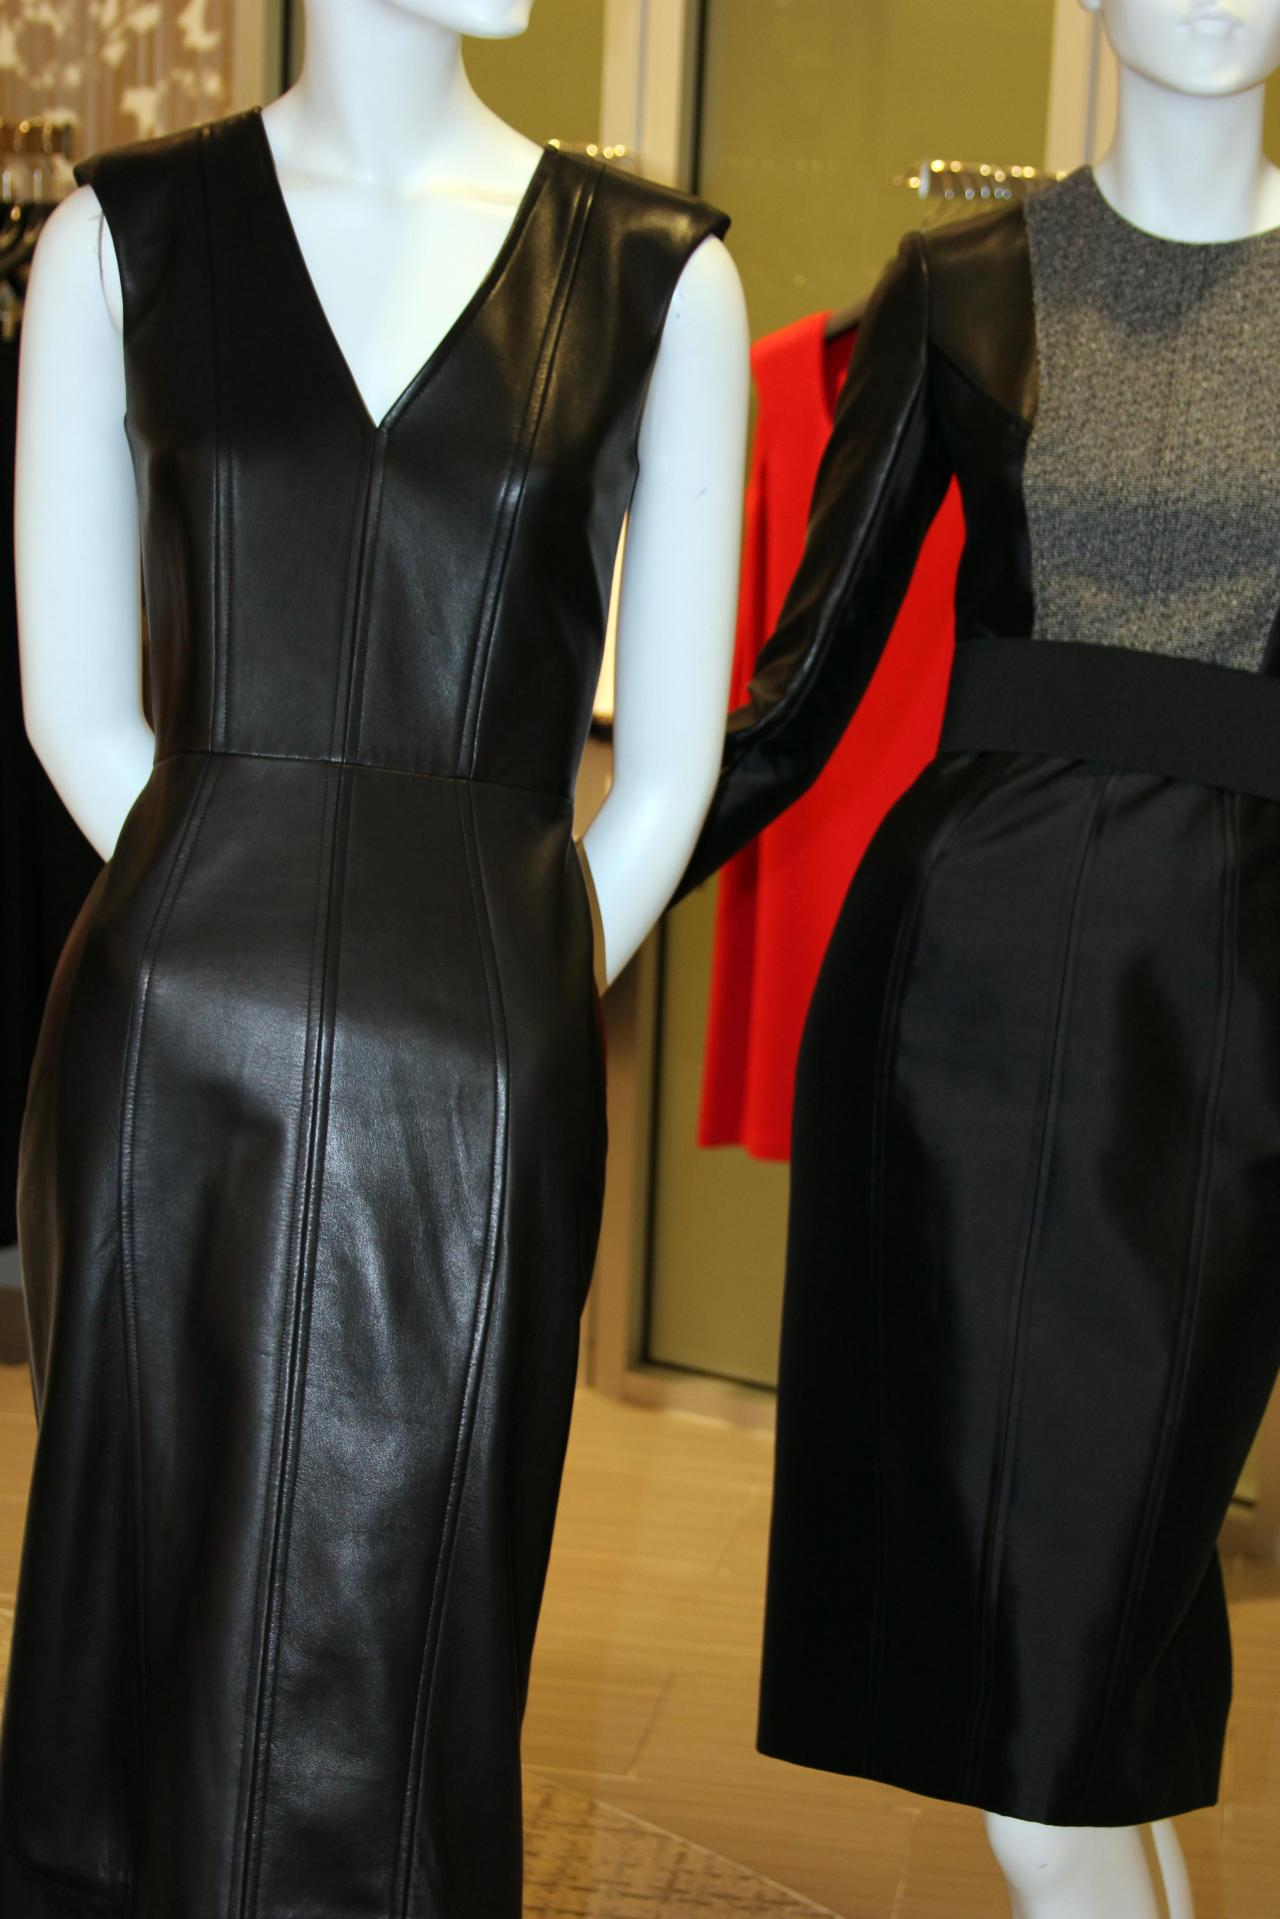 I am so in love with Karolina Zmarlak's Fall/Winter 2013 collection! It is so sleek and chic!